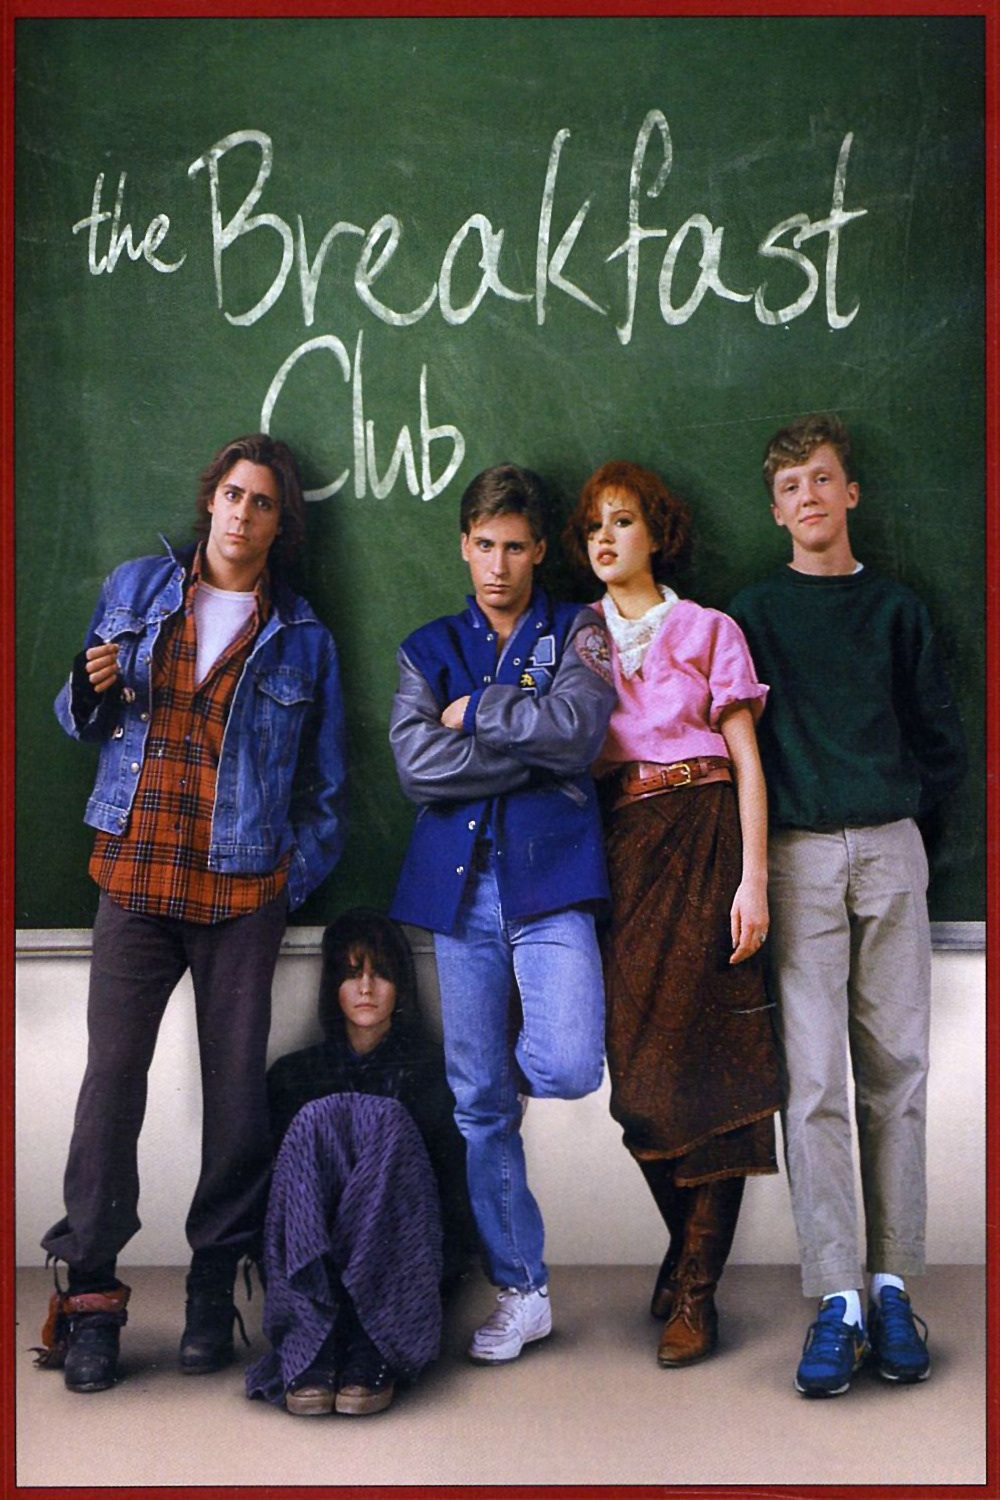 Faviana Interns Favs the breakfast club